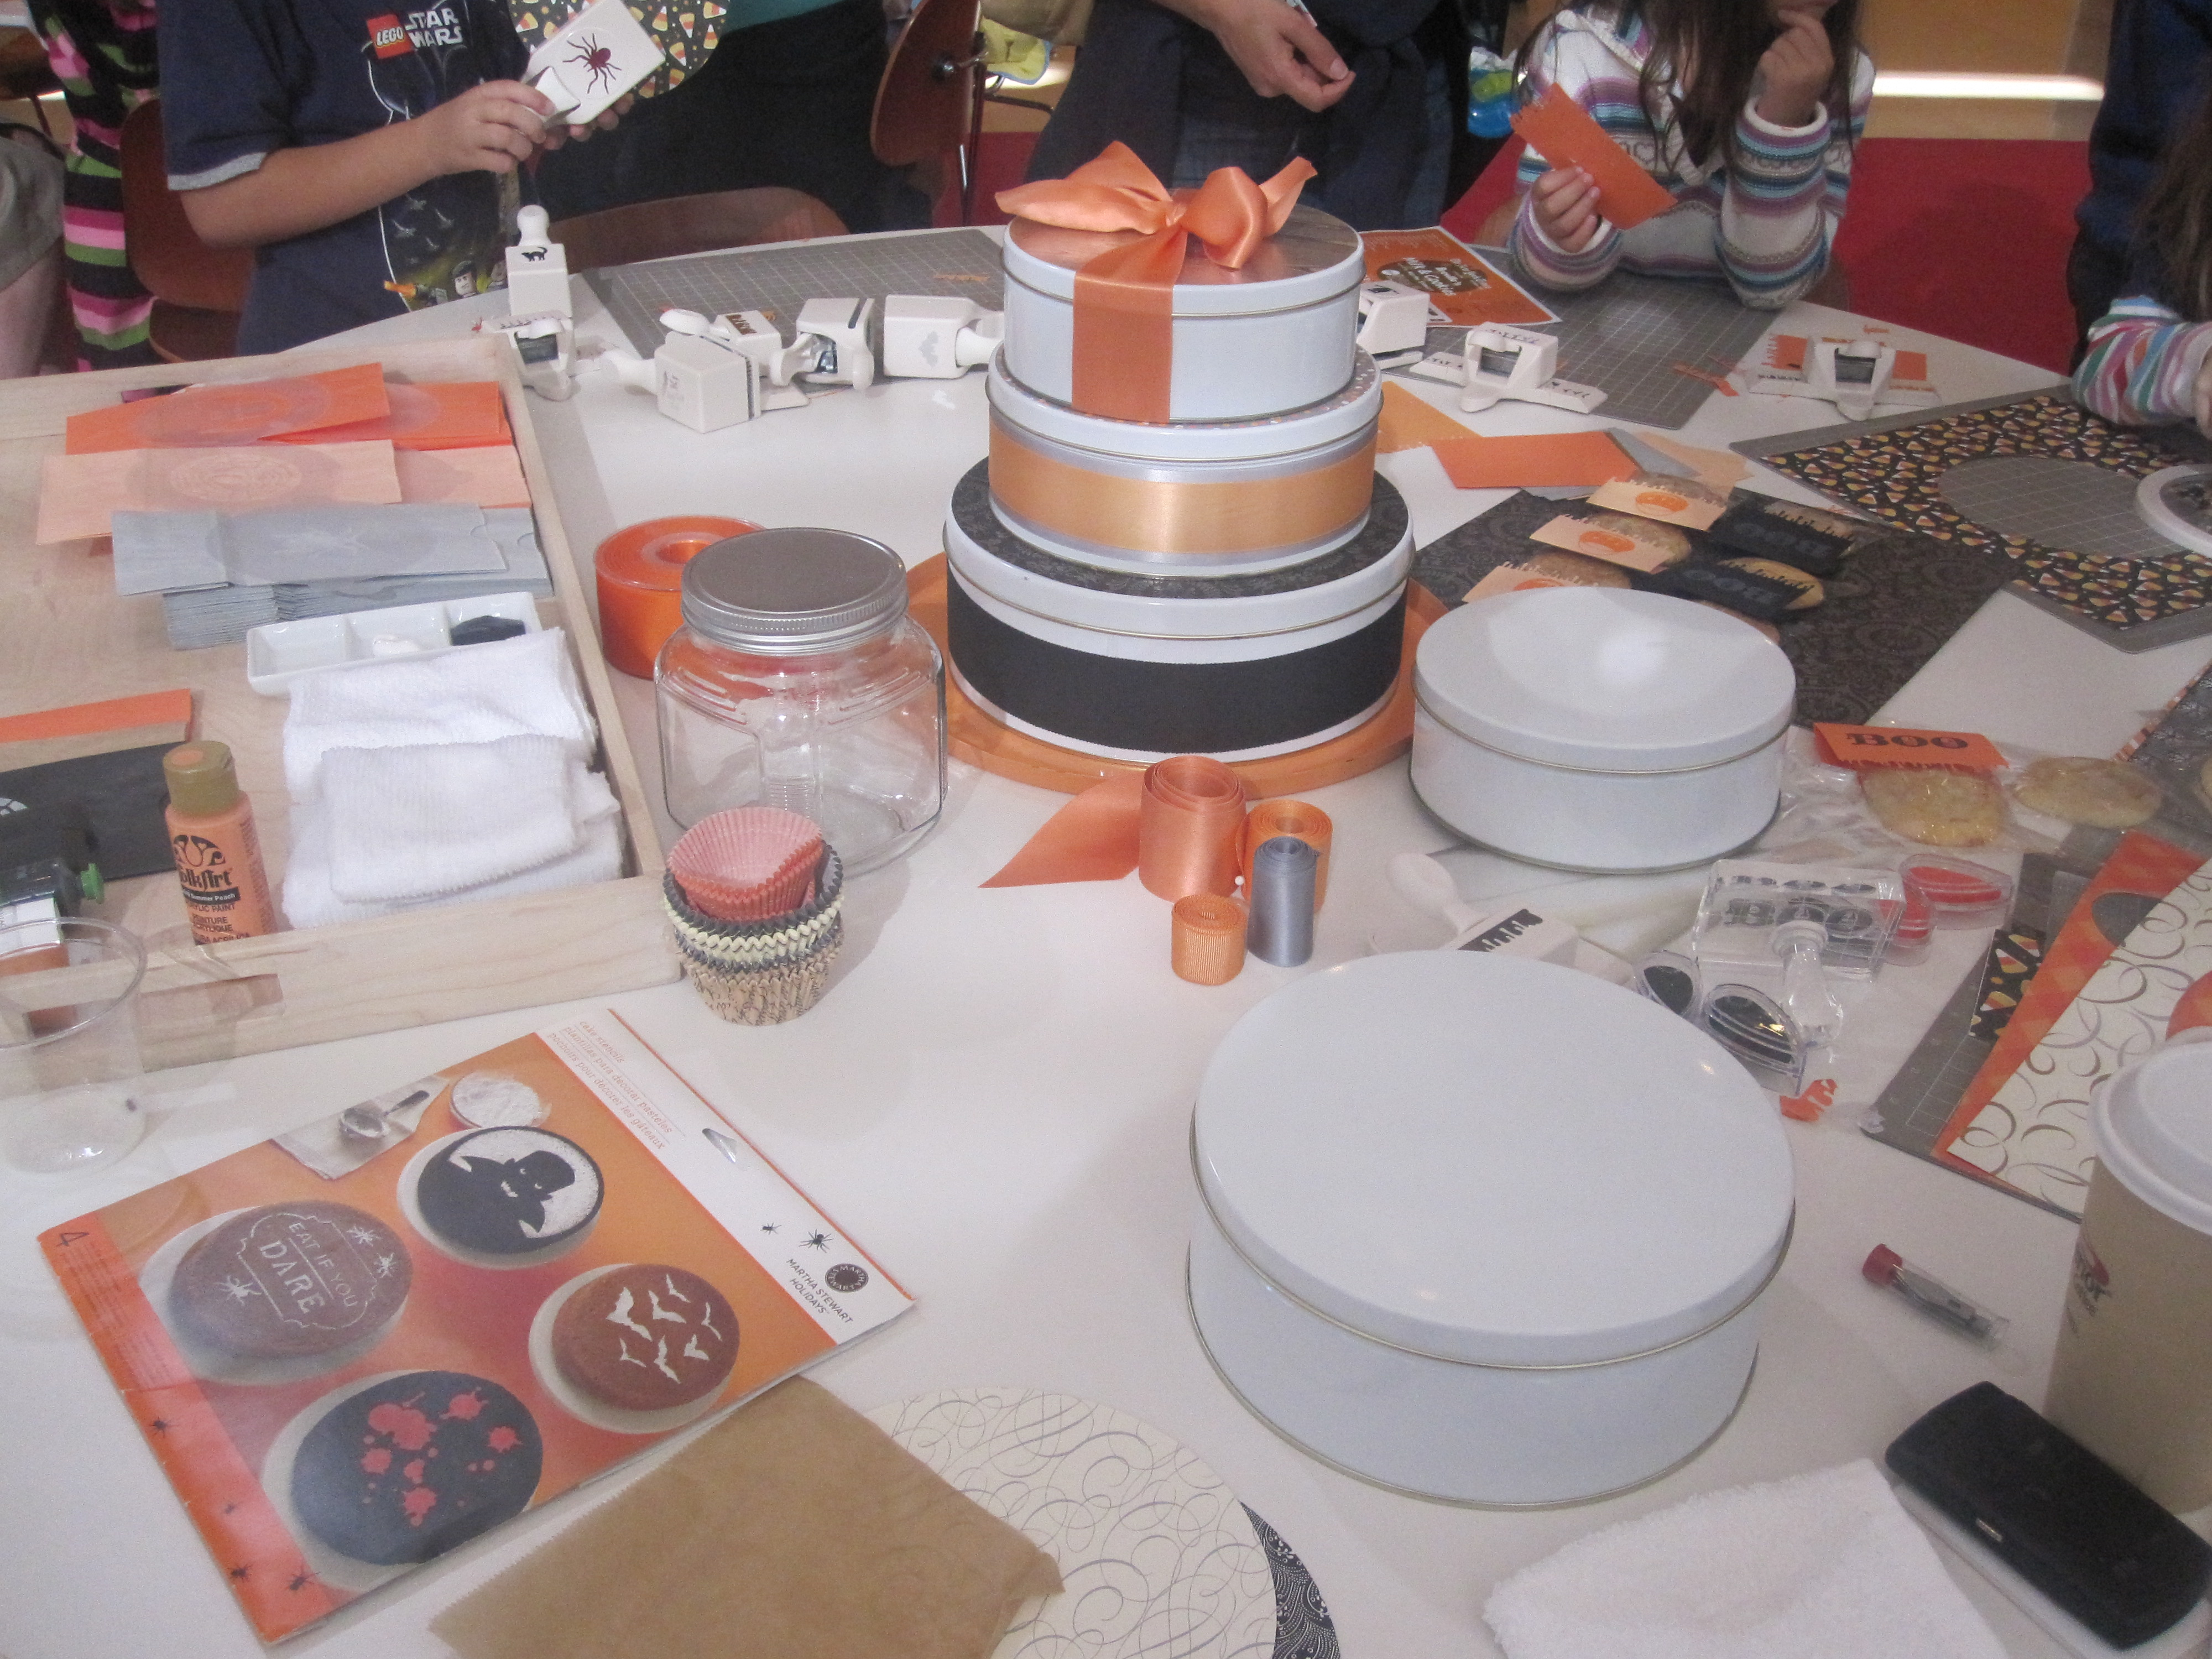 In the center of the room, the crafting stations were set up. This one was covered in cookie packaging tools like ribbon, tins, and decorative paper.